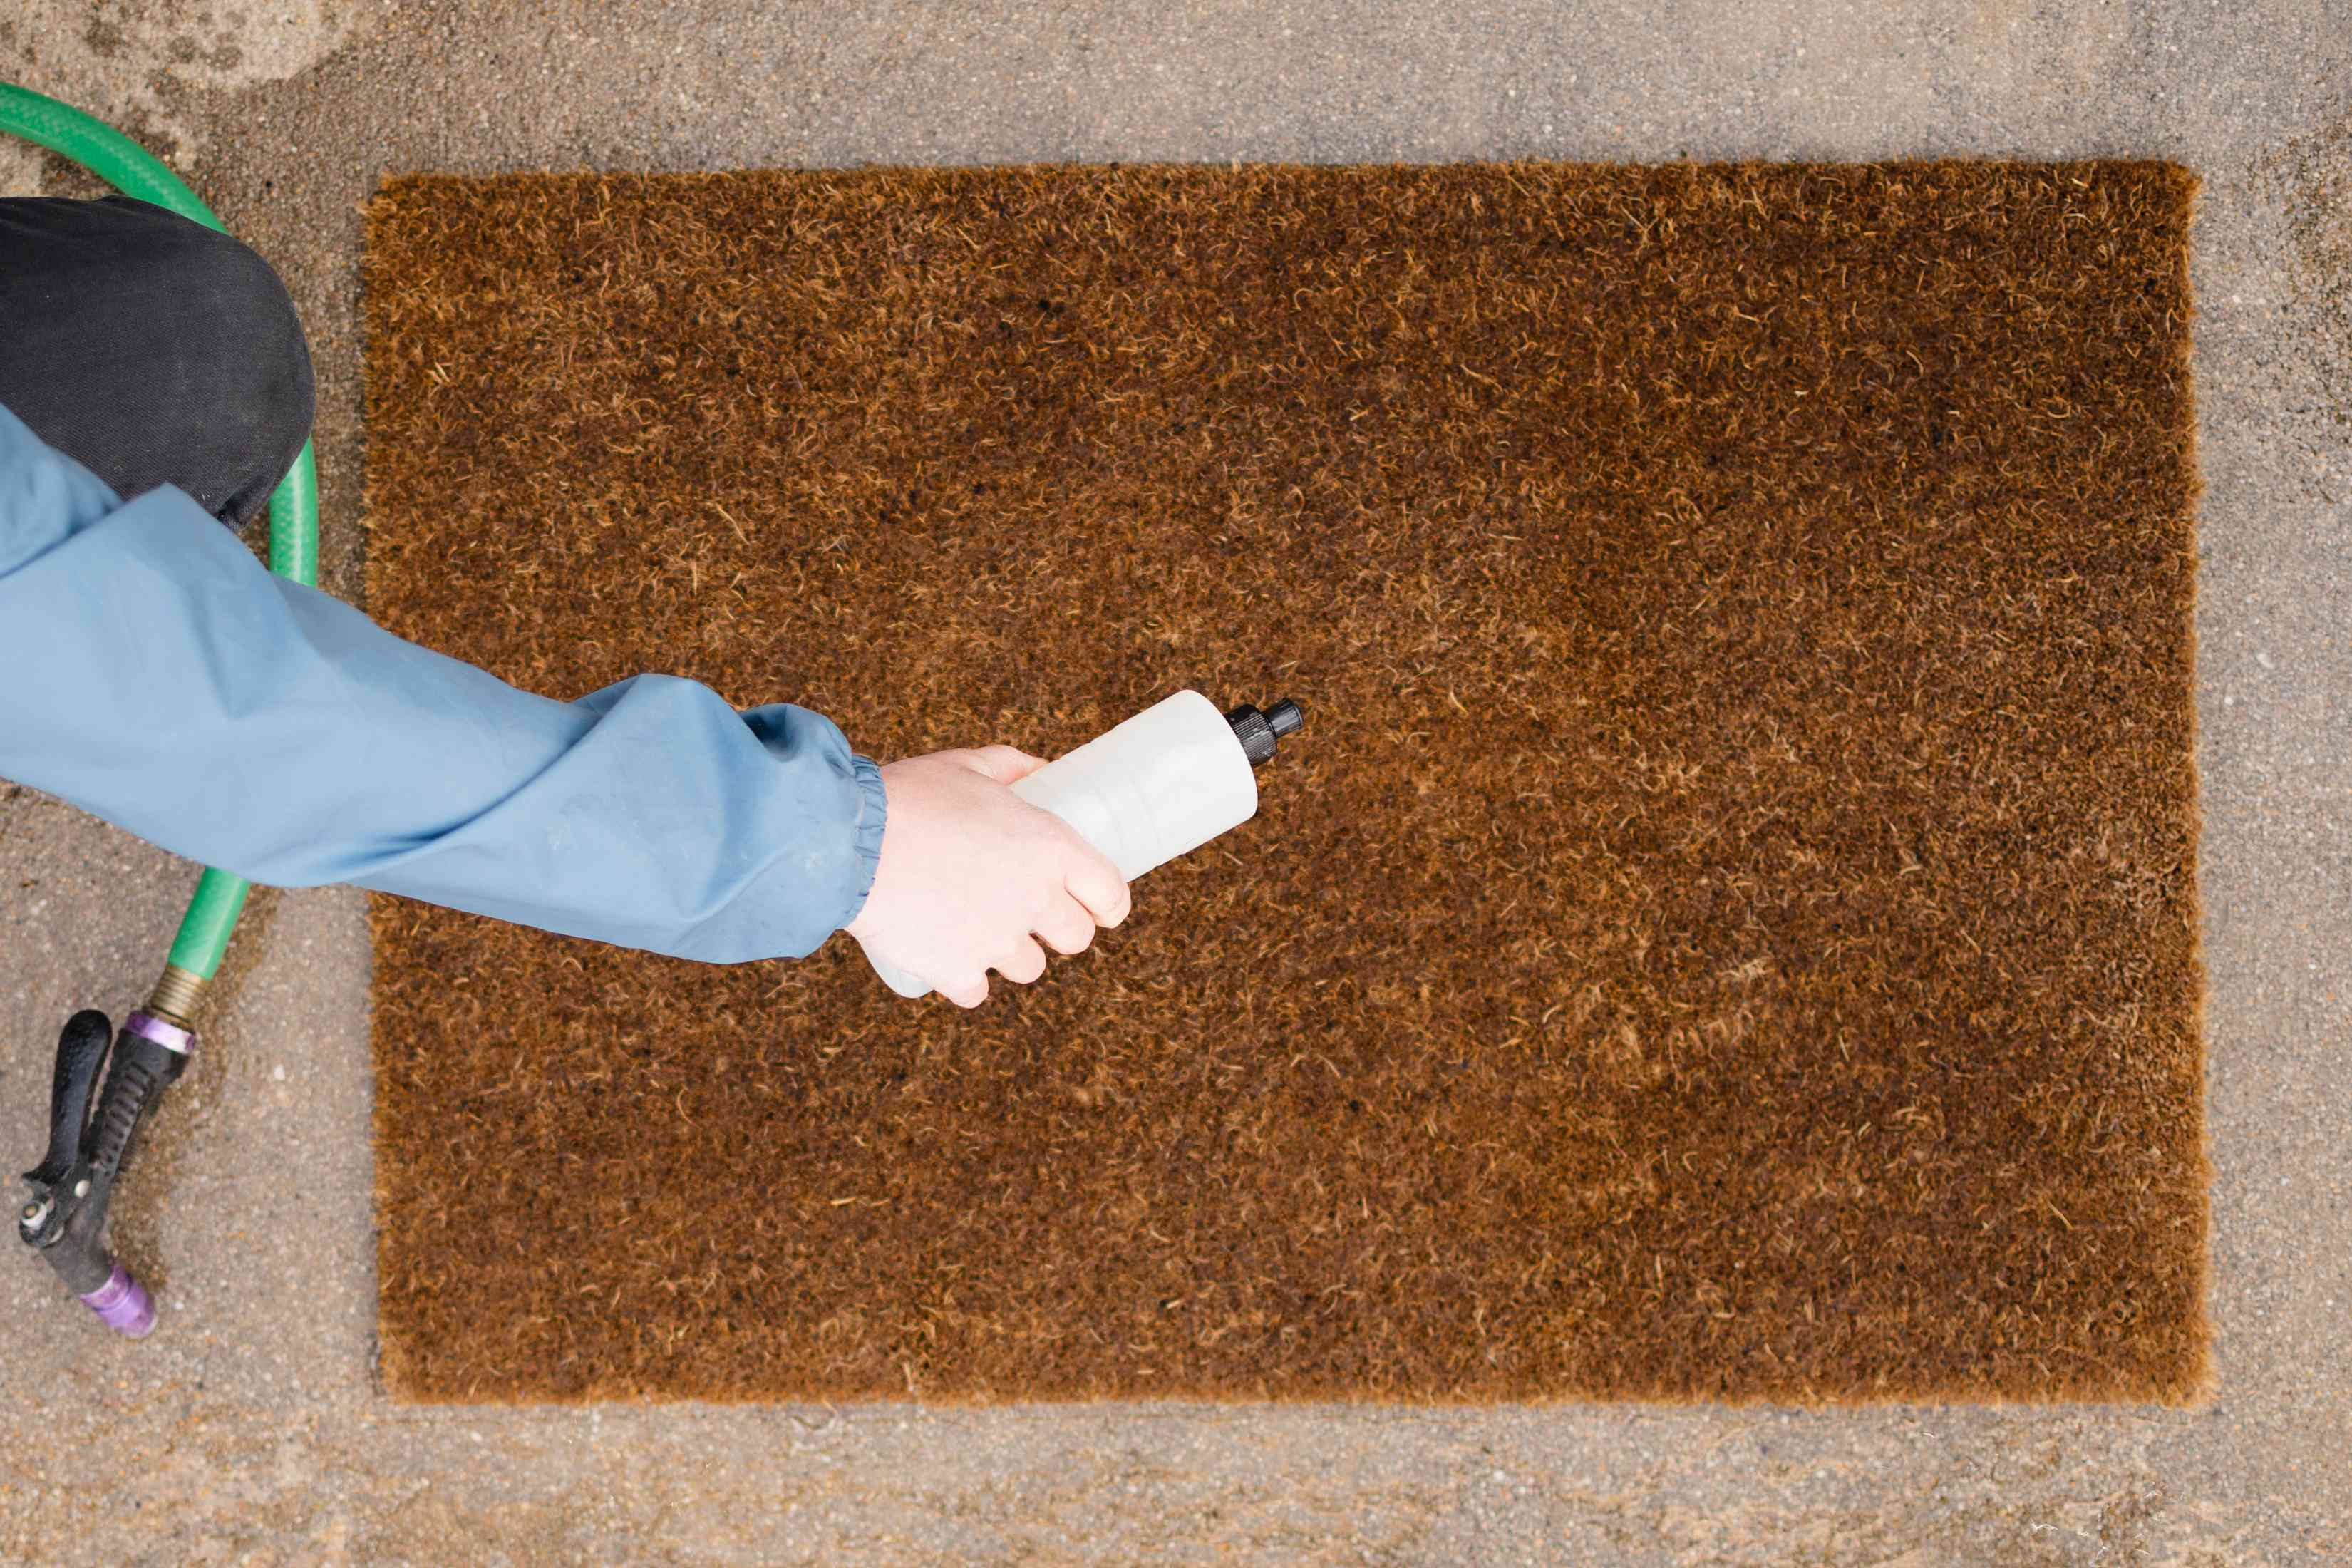 Mild dish soap added to tough spots on brown doormat